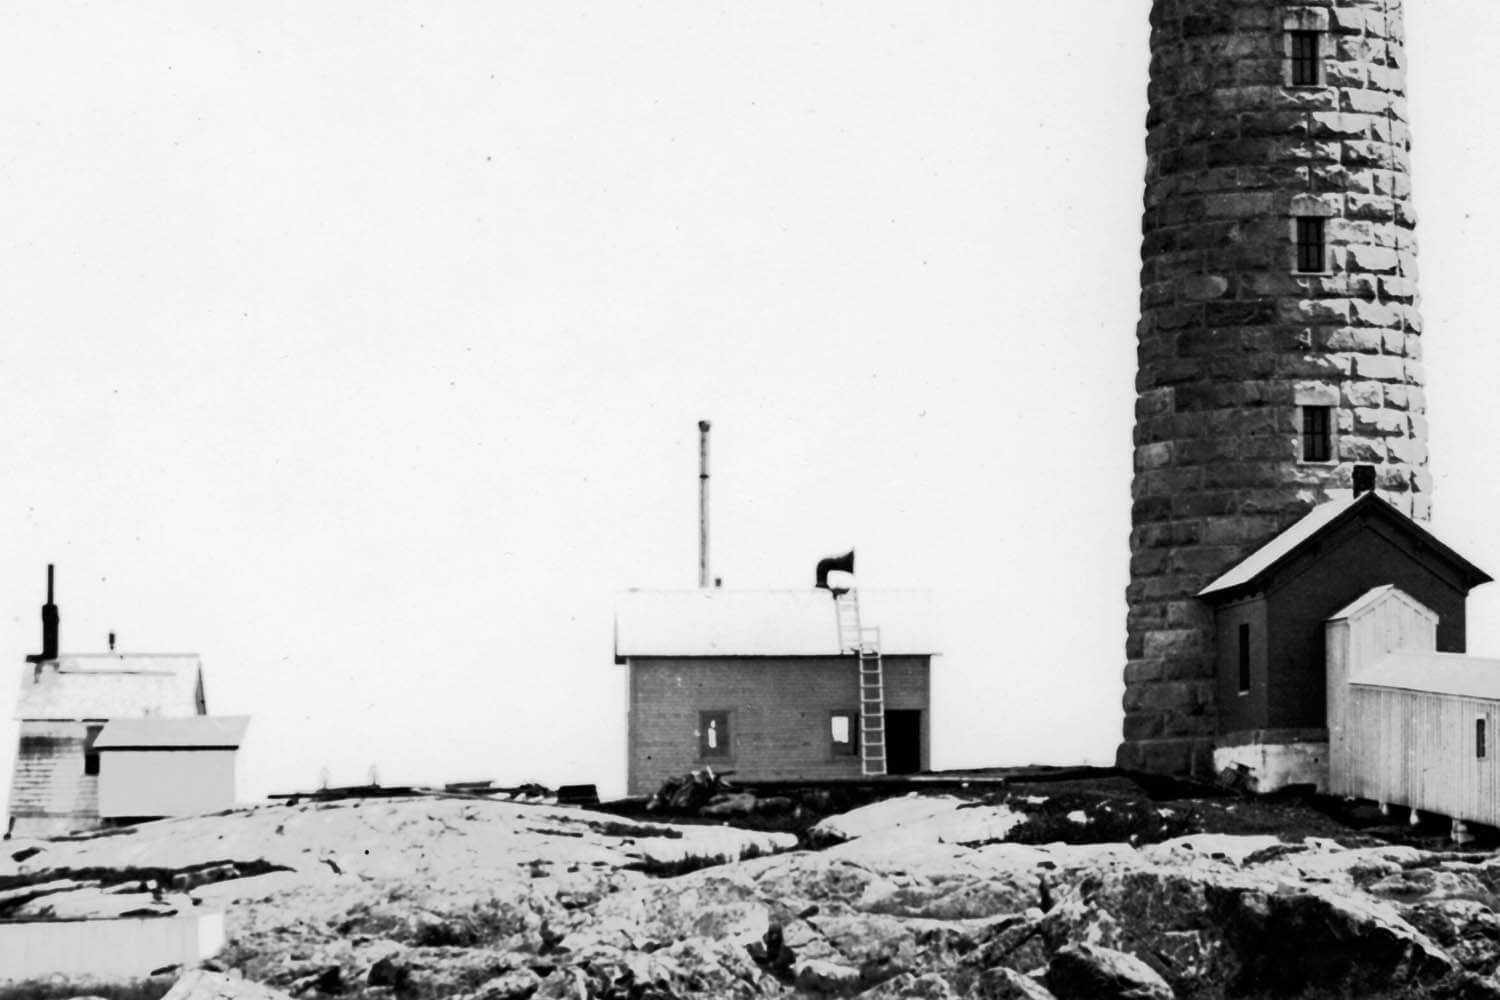 South tower with two original fog signals c.1868.